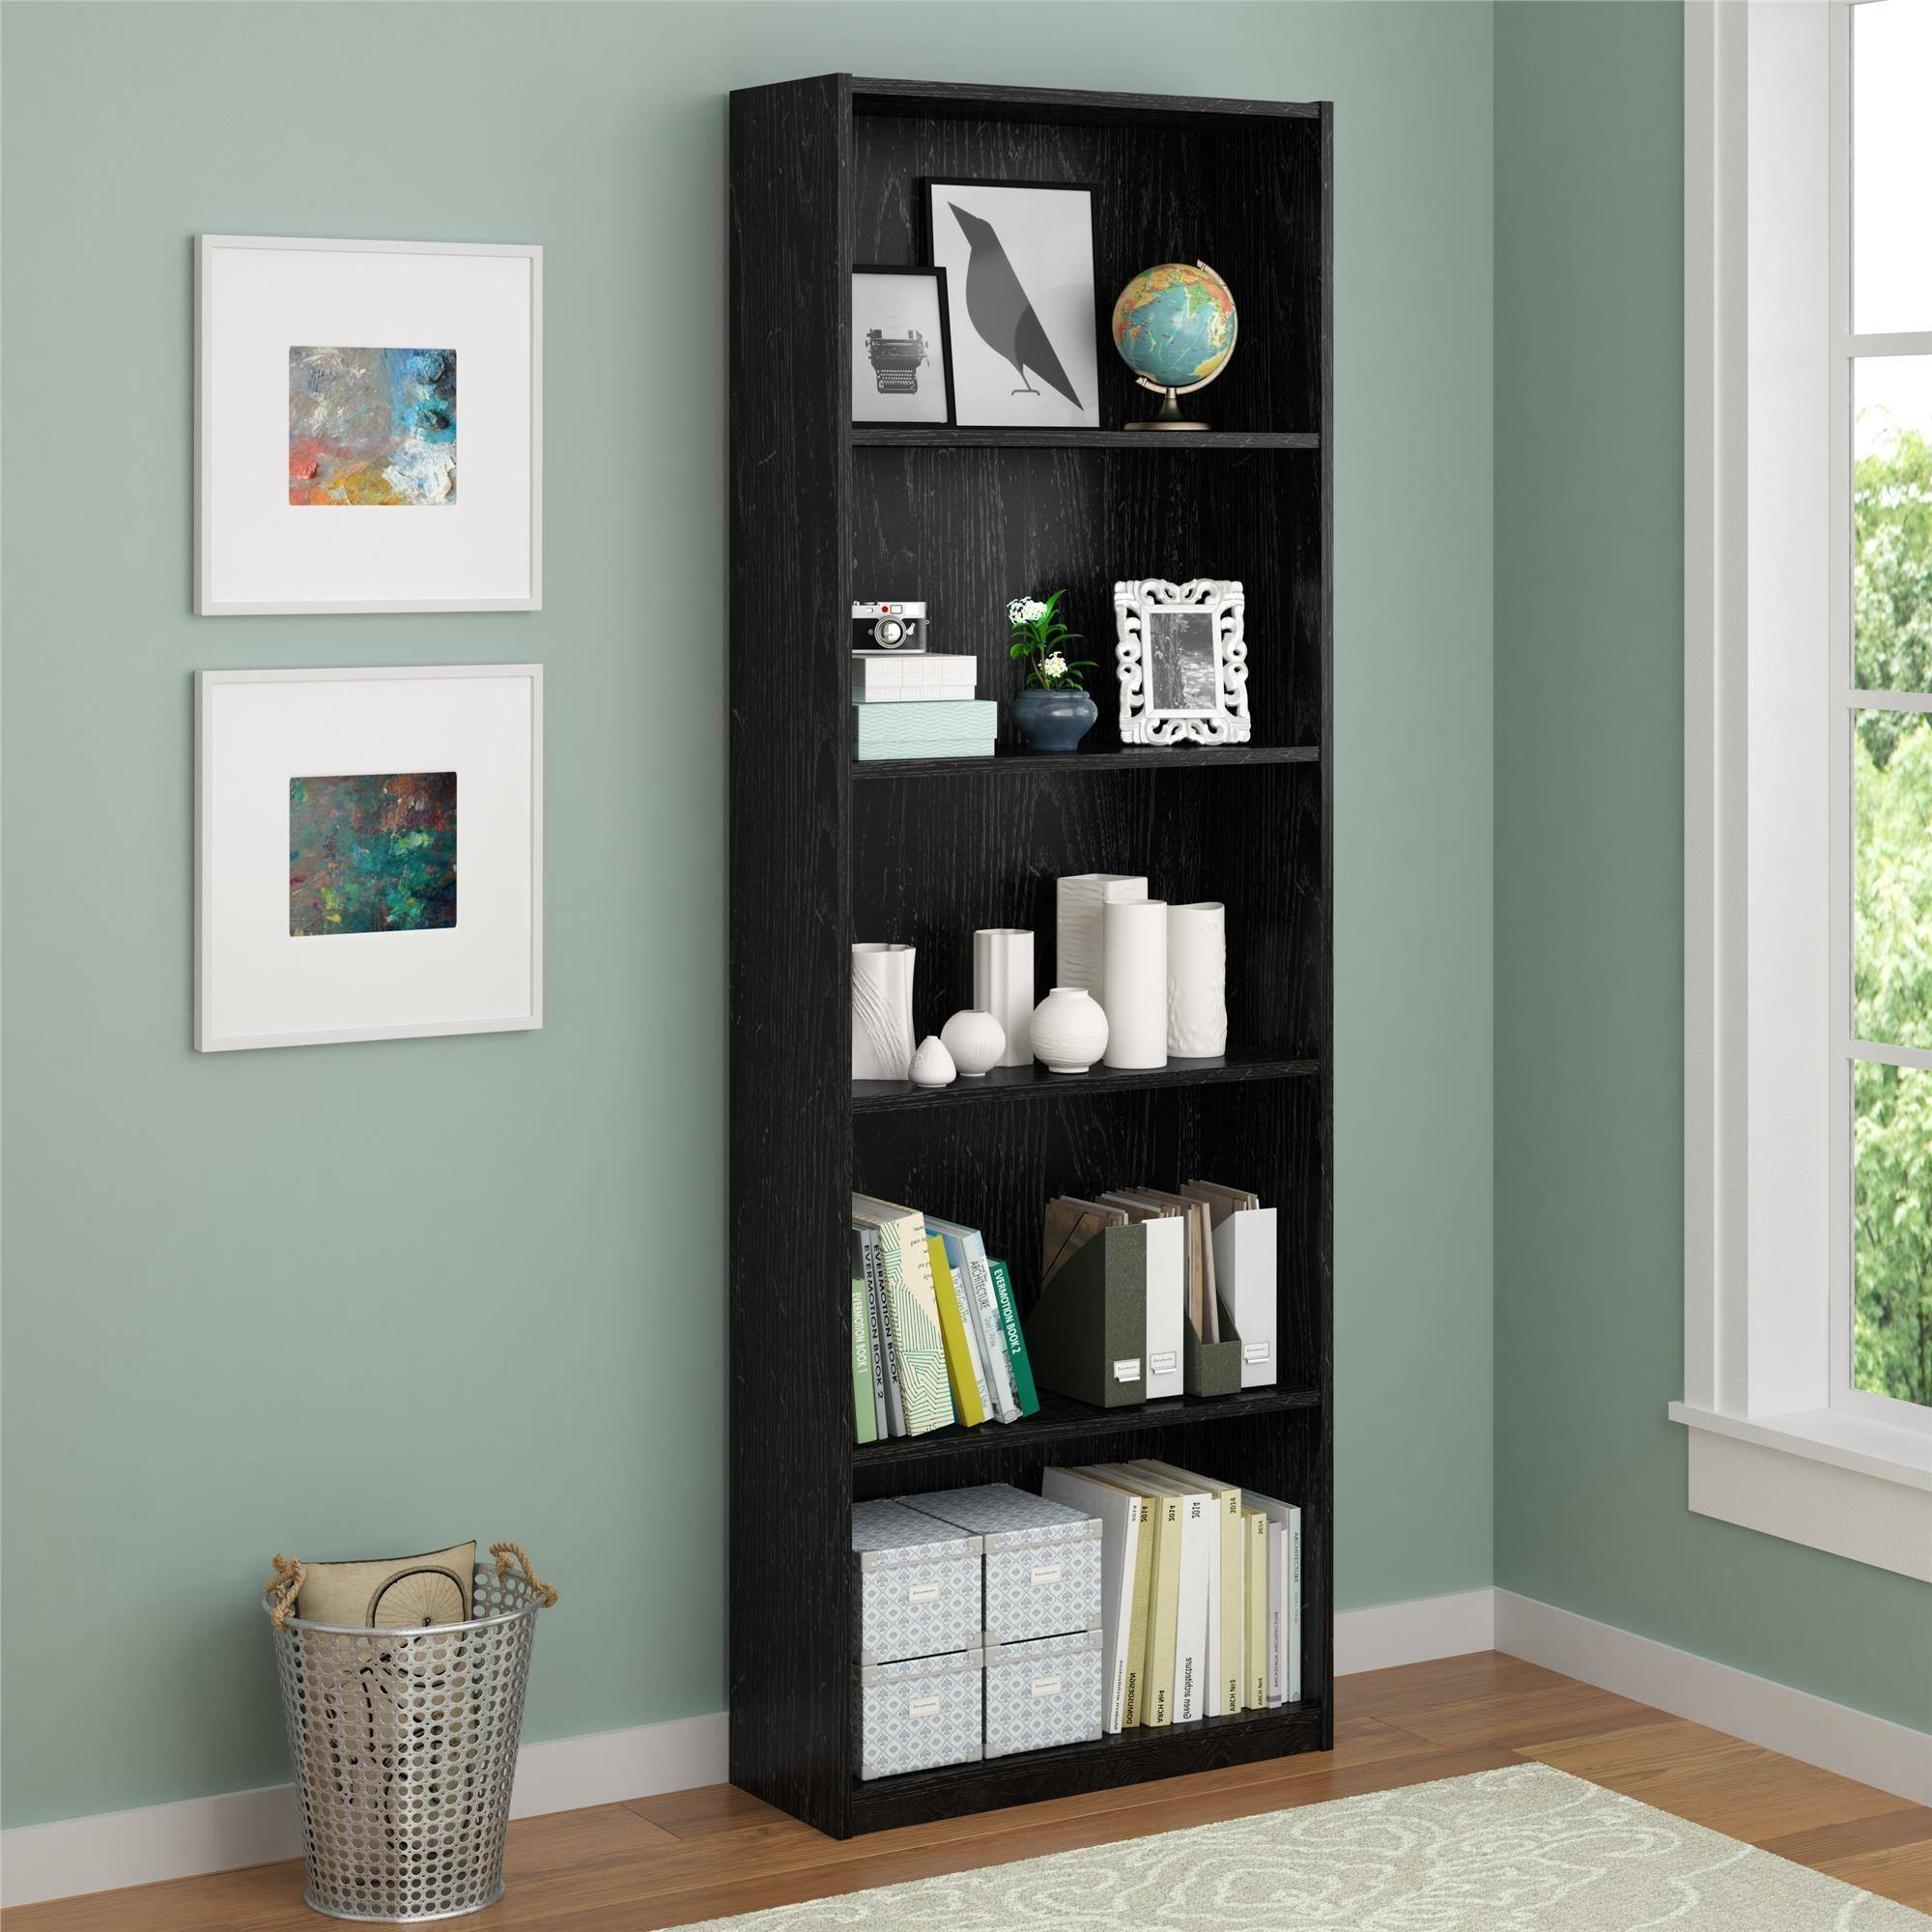 Ameriwood 5 Shelf Bookcase Multiple Colors Walmart Throughout Very Tall Bookcase (#1 of 15)